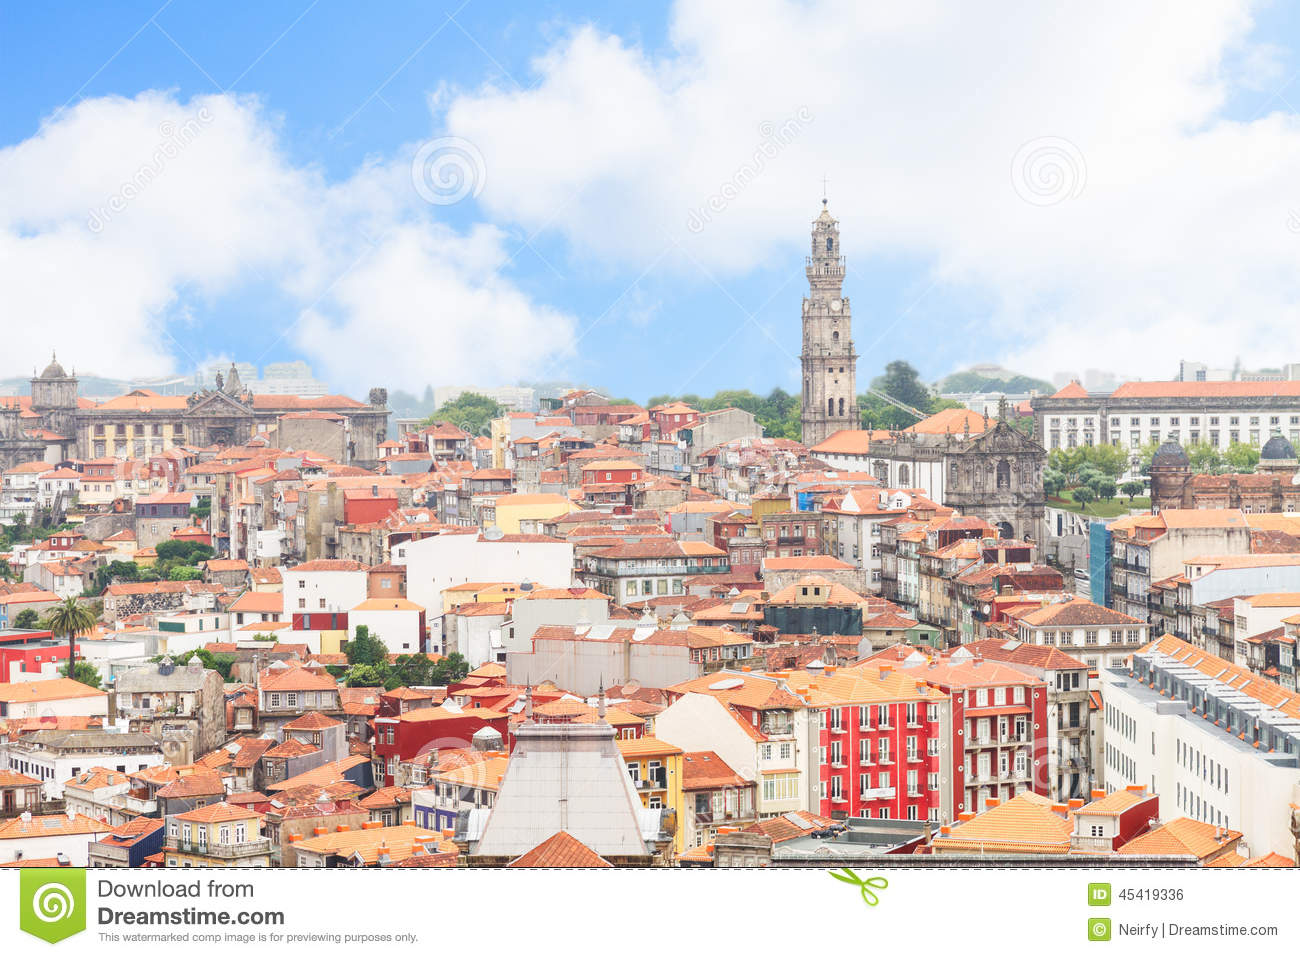 Skyline of Porto, Portugal